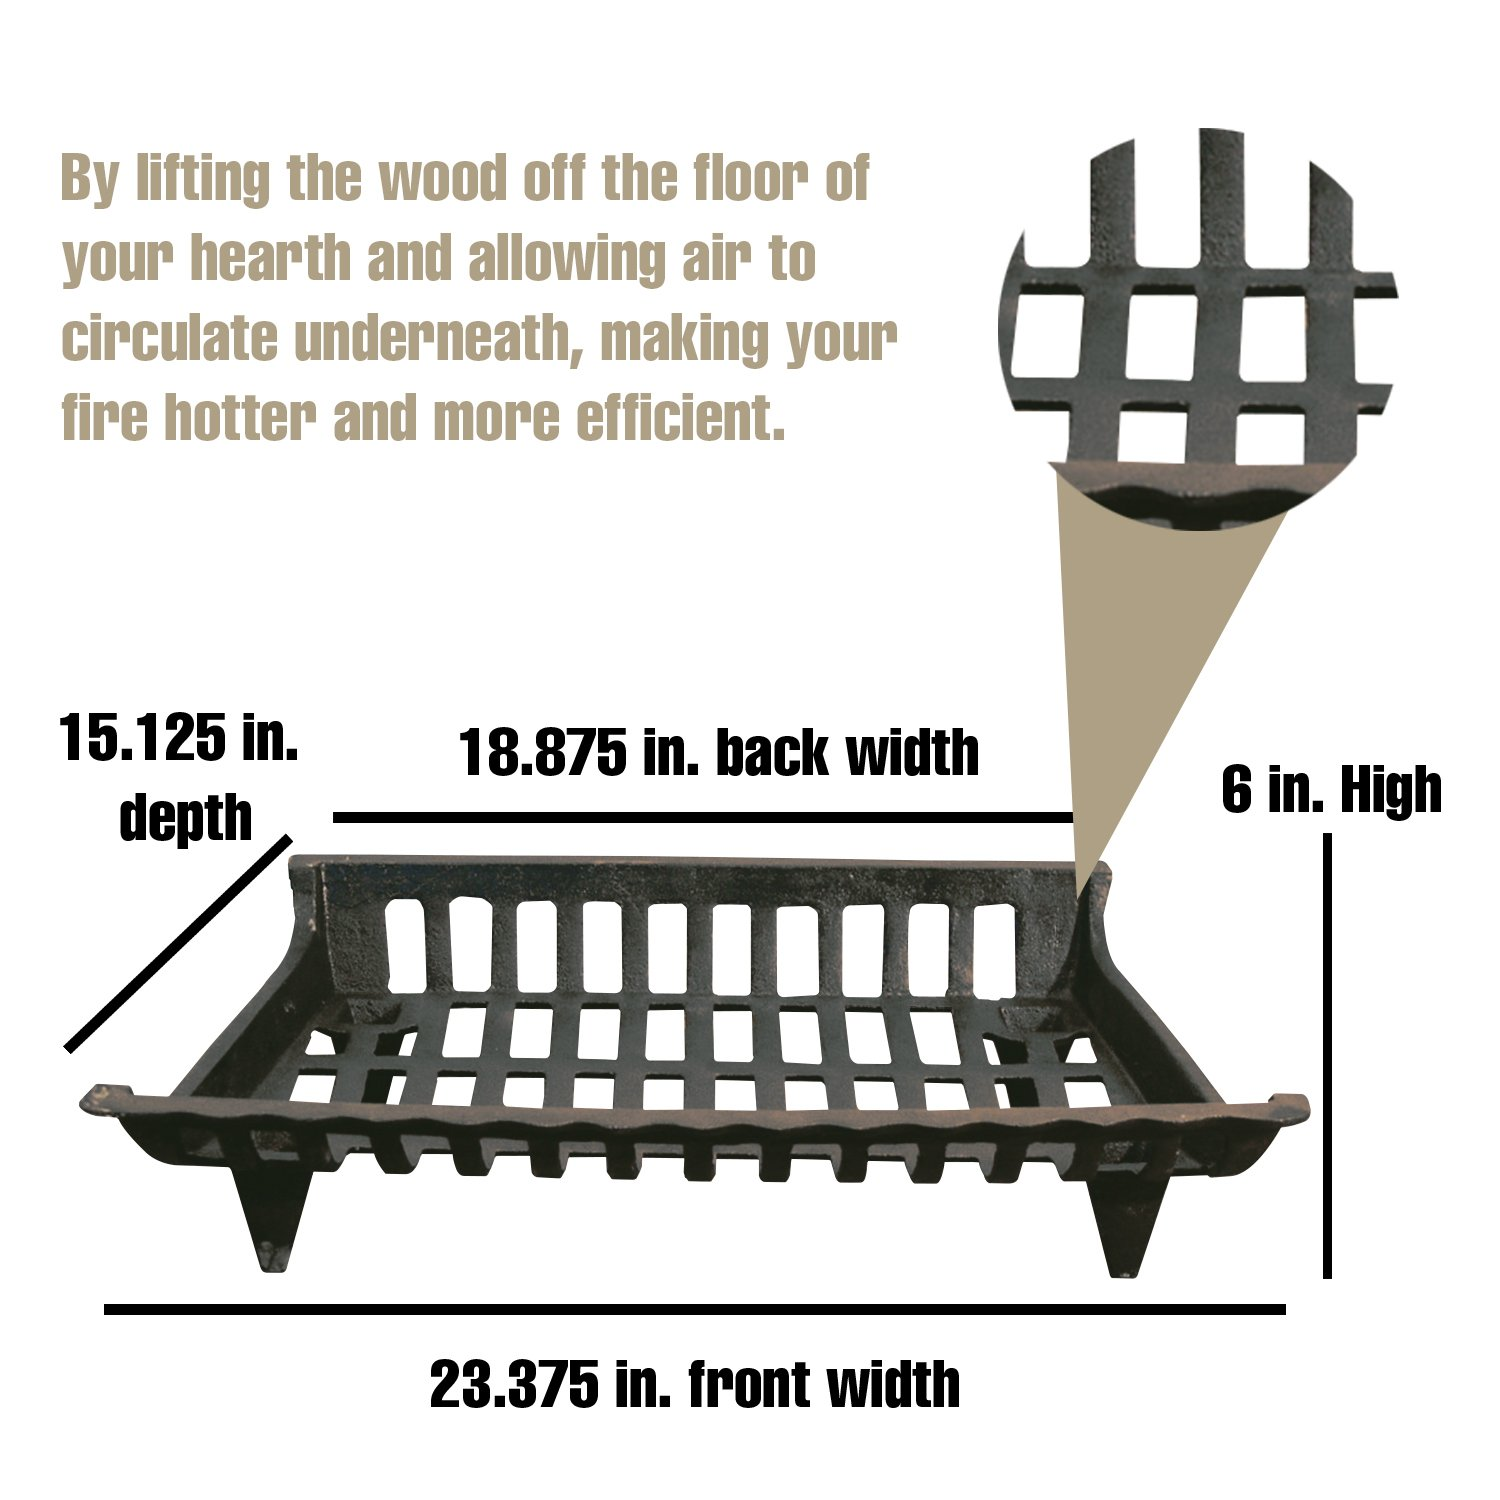 """Patterned Iron Fireplace Grate Fire grates 22 Inches 26 22 4 Size Variations Includes Ash Tray and Iron Rod with Unique GIFT Coffee Table Legs Height 15/"""" Width 28 IInches 24 Black"""